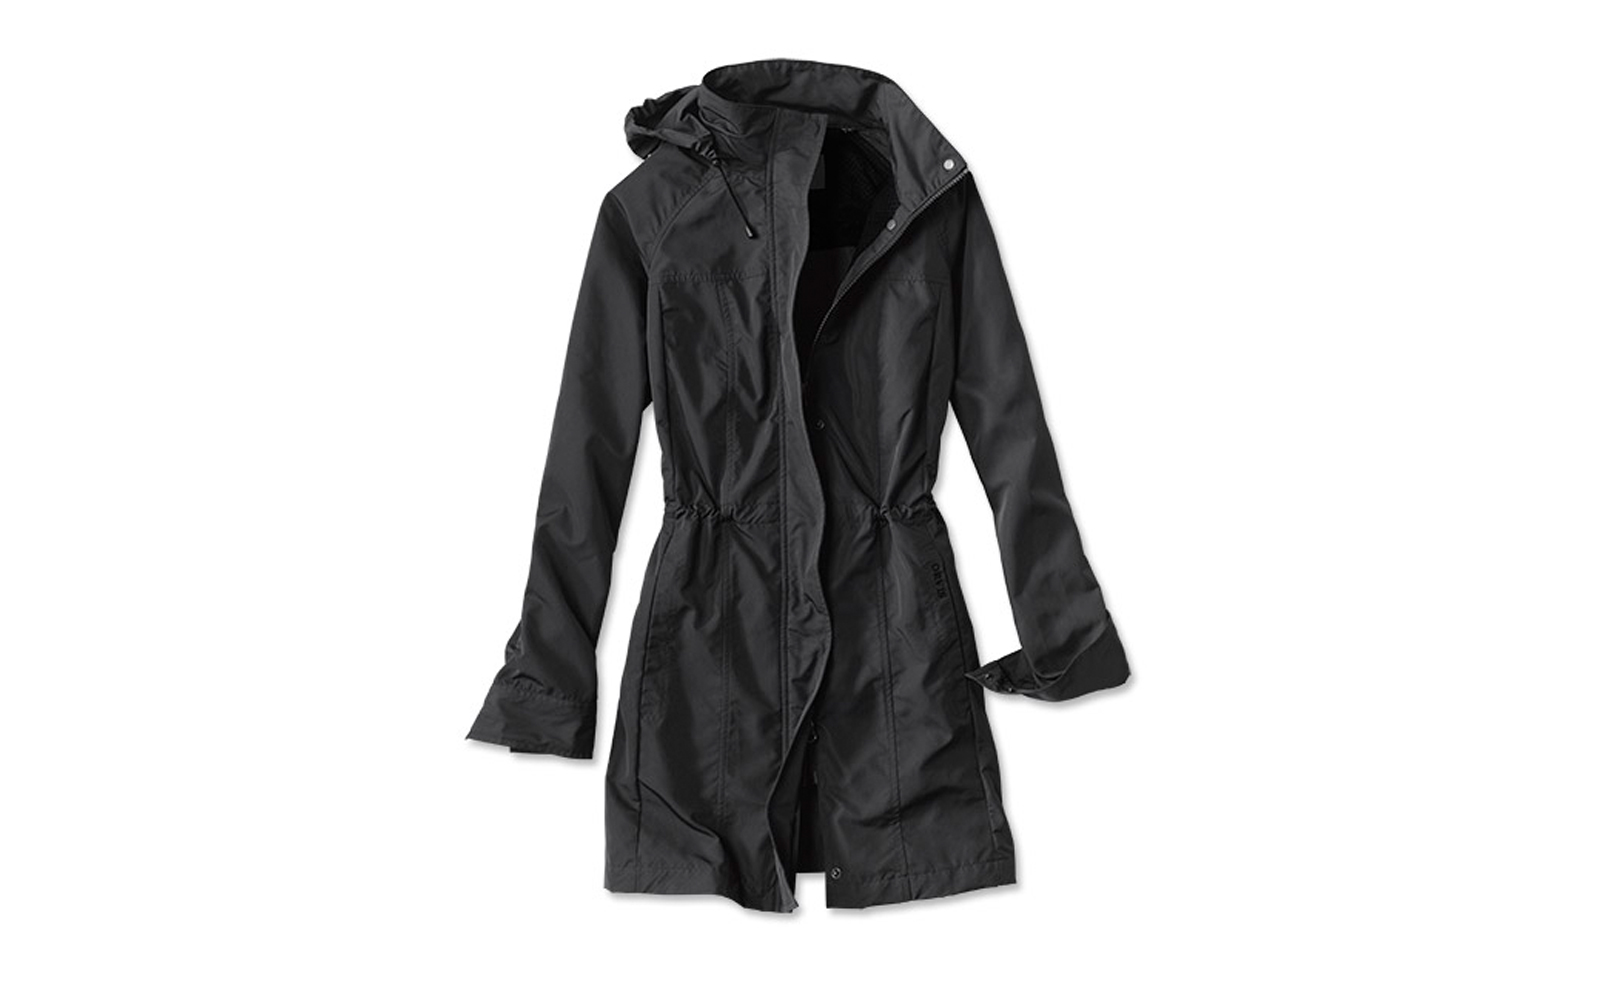 Orvis Pack-and-Go Women's Travel Jacket